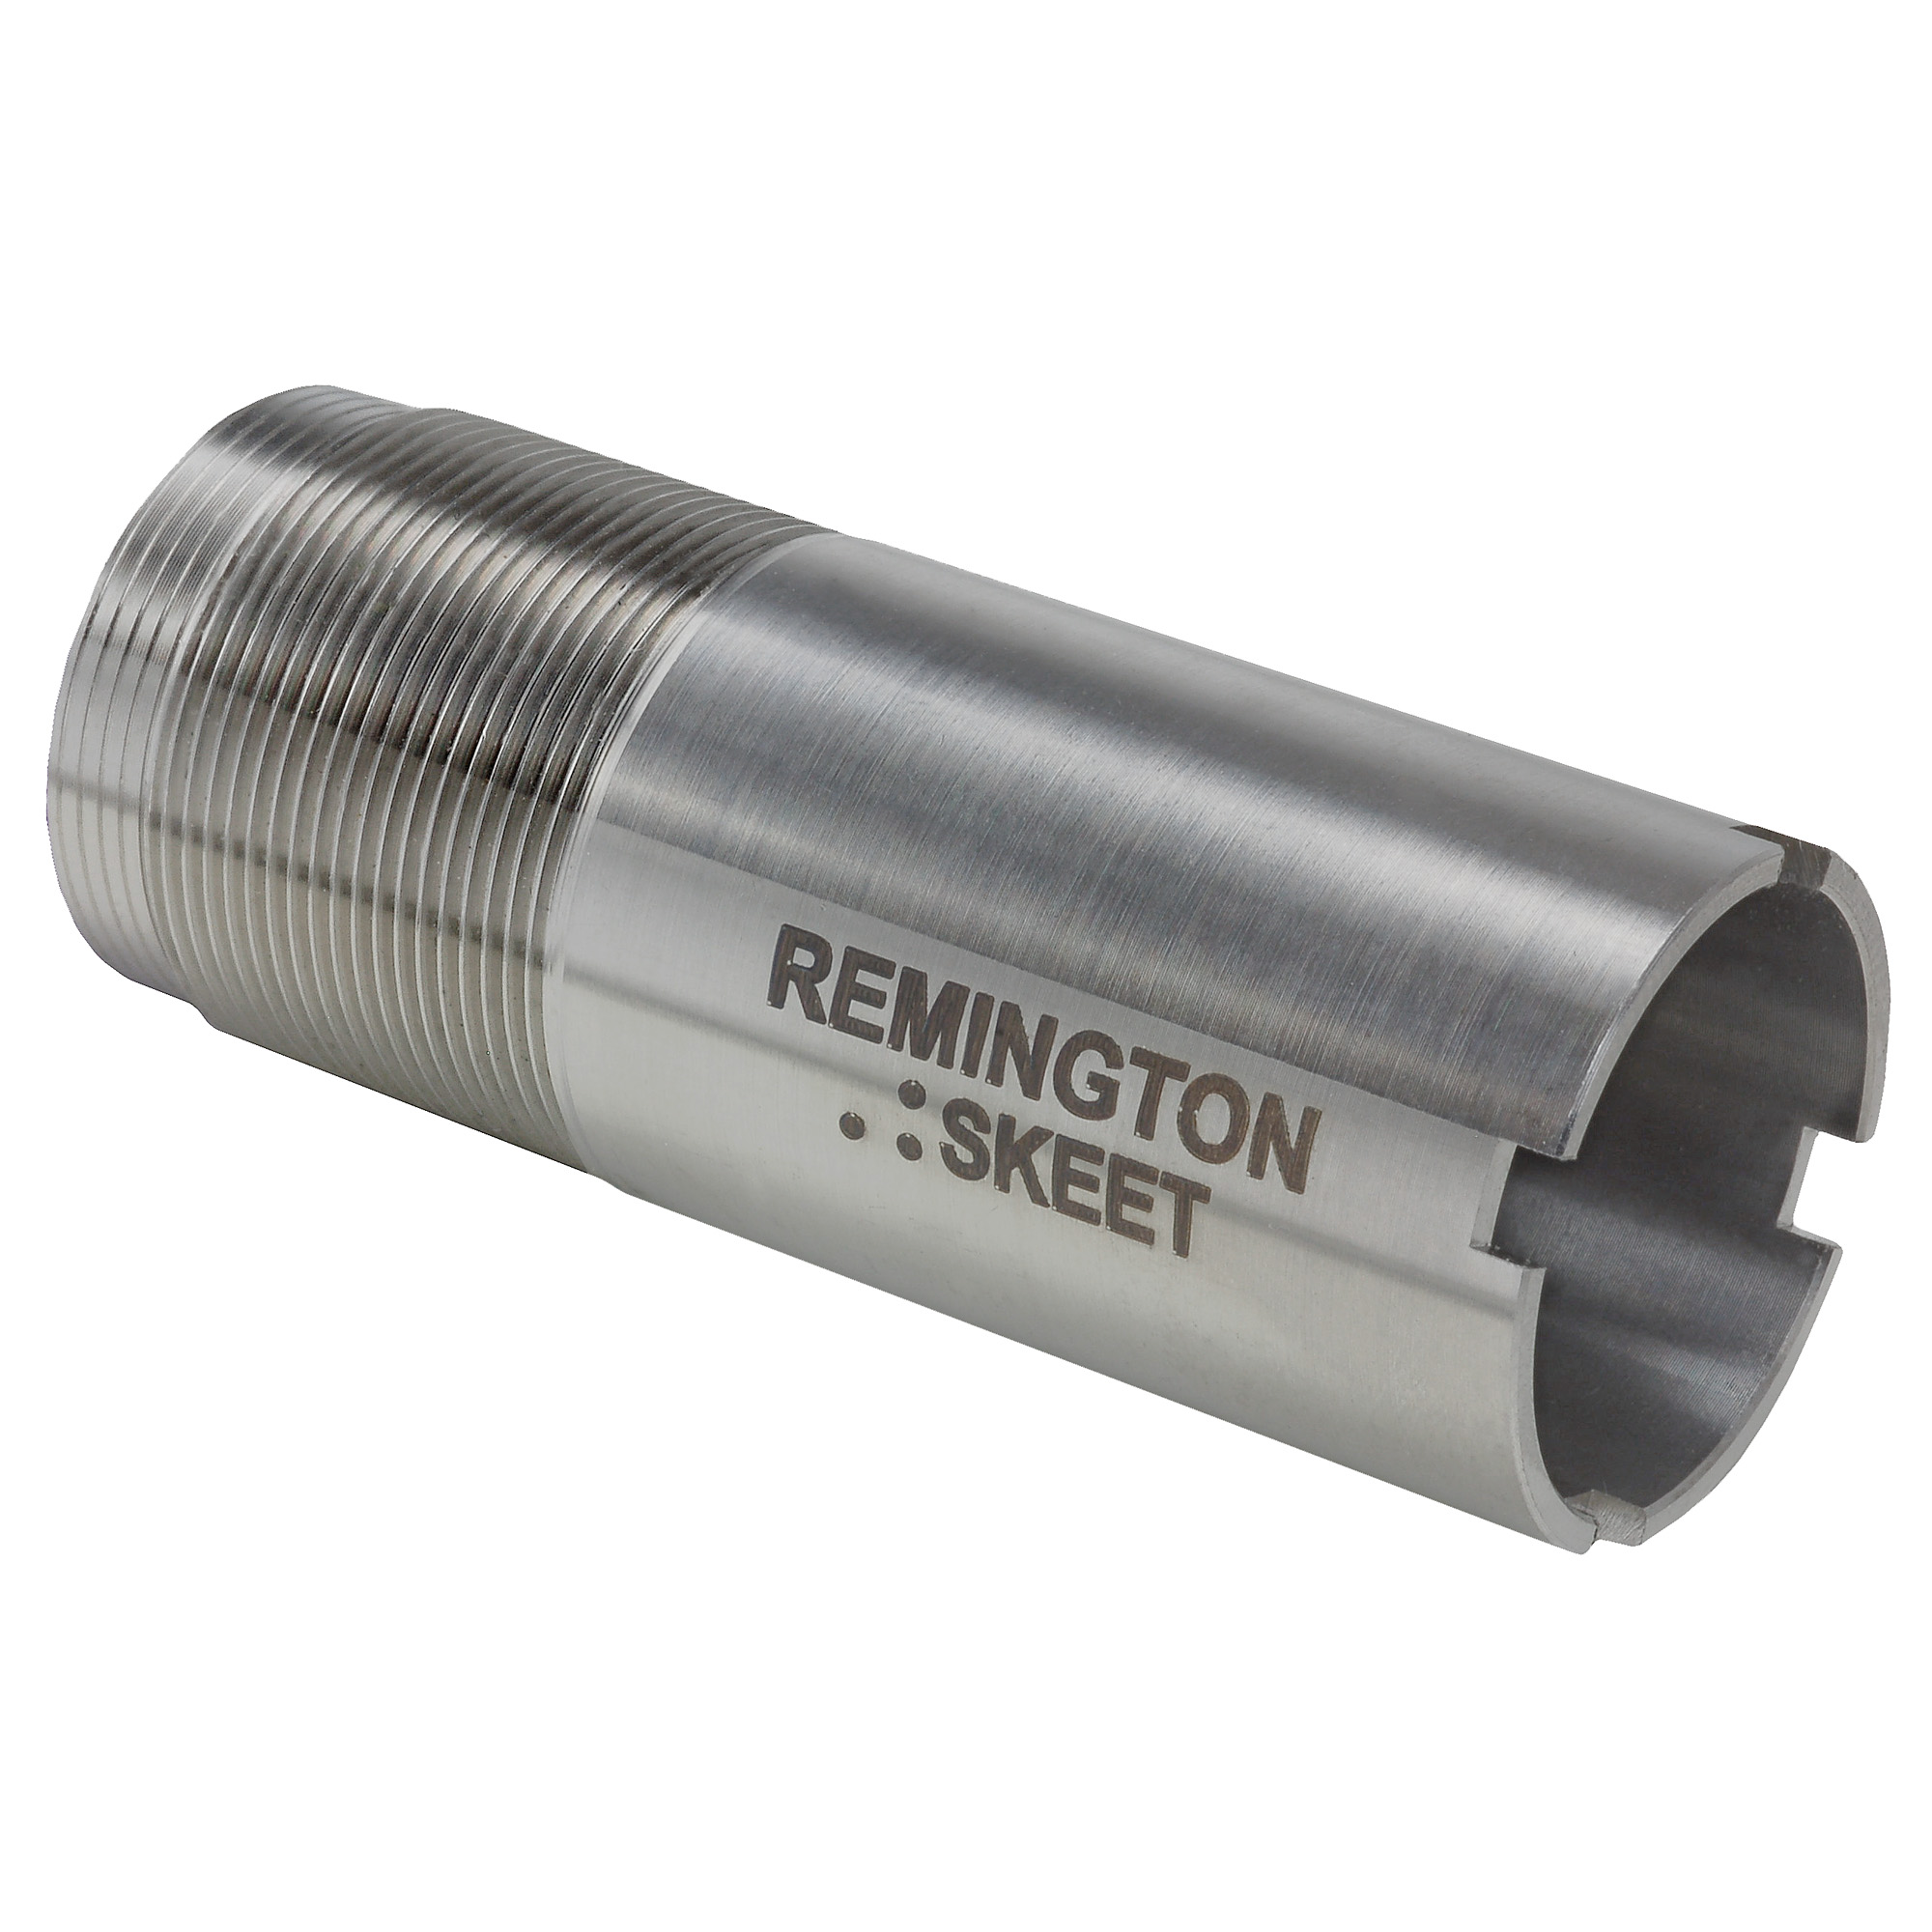 """Rem(TM) Choke 12 Ga. Skeet Flush"""" Steel or Lead. Remington's factory Rem Chokes are a system of interchangeable choke tubes and extended chokes that allow you to quickly and easily change the choke of your shotgun to match specific hunting conditions. Performance tuned for all Remington shotguns in field and target constrictions for optimal pattern performance."""